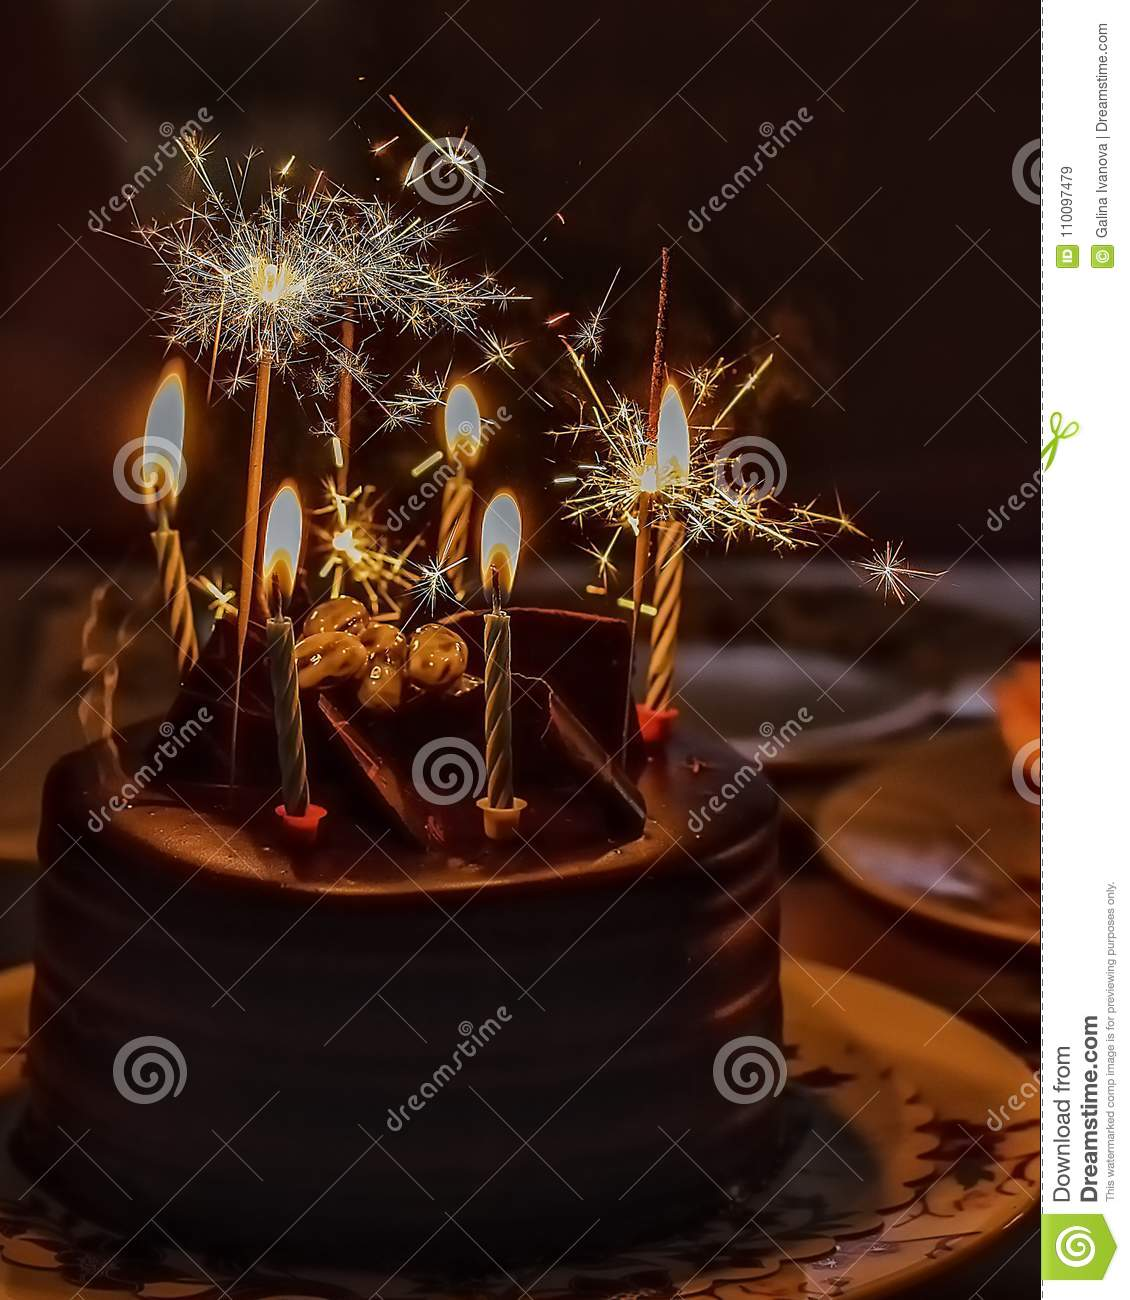 Amazing Chocolate Cake With Candles And Sparkling Light Stock Image Funny Birthday Cards Online Alyptdamsfinfo